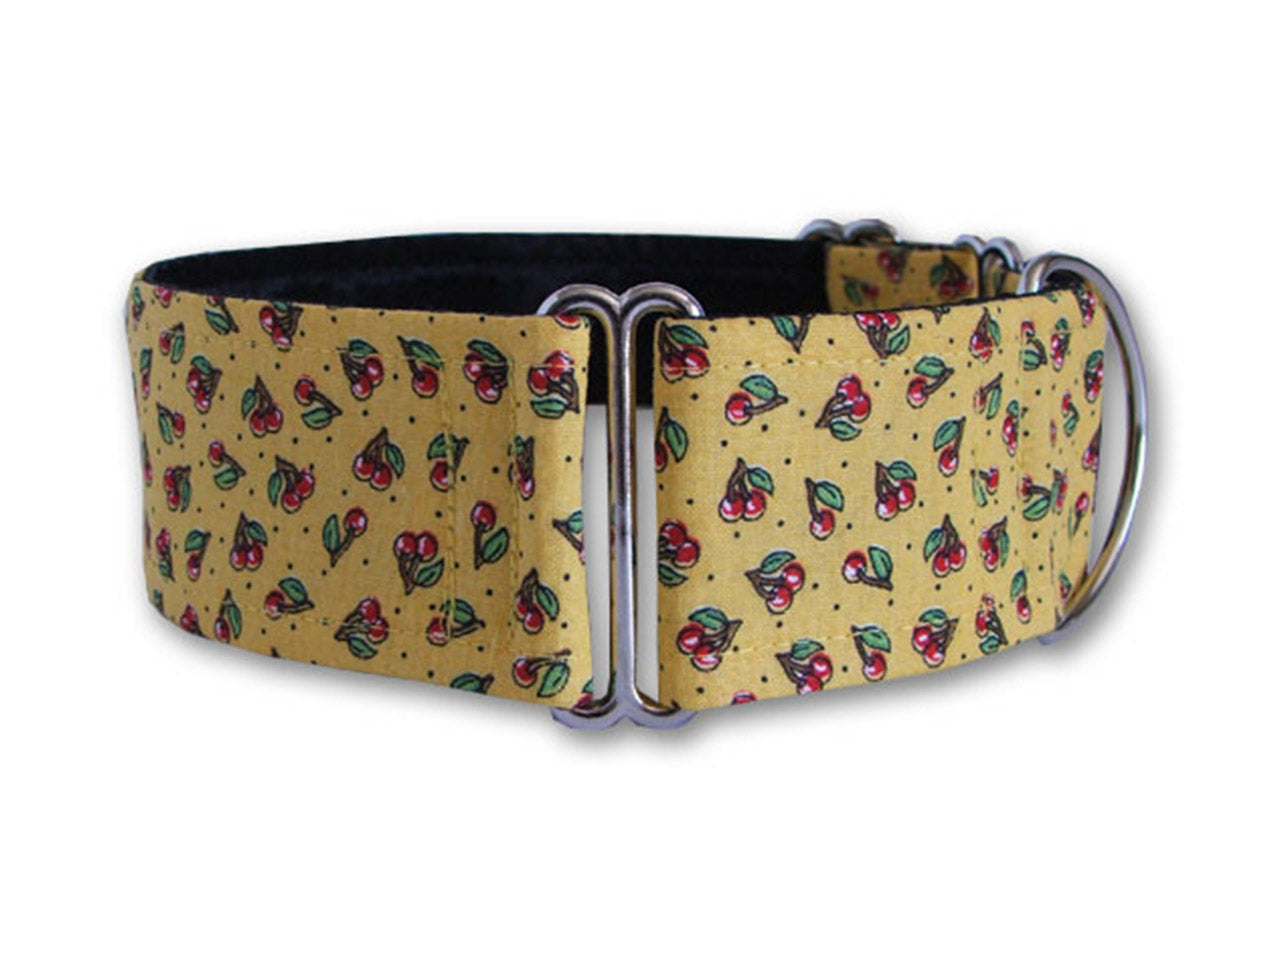 Petite red cherries sweeten up this sunny yellow collar, making a cheerful accessory for any stylish pup!